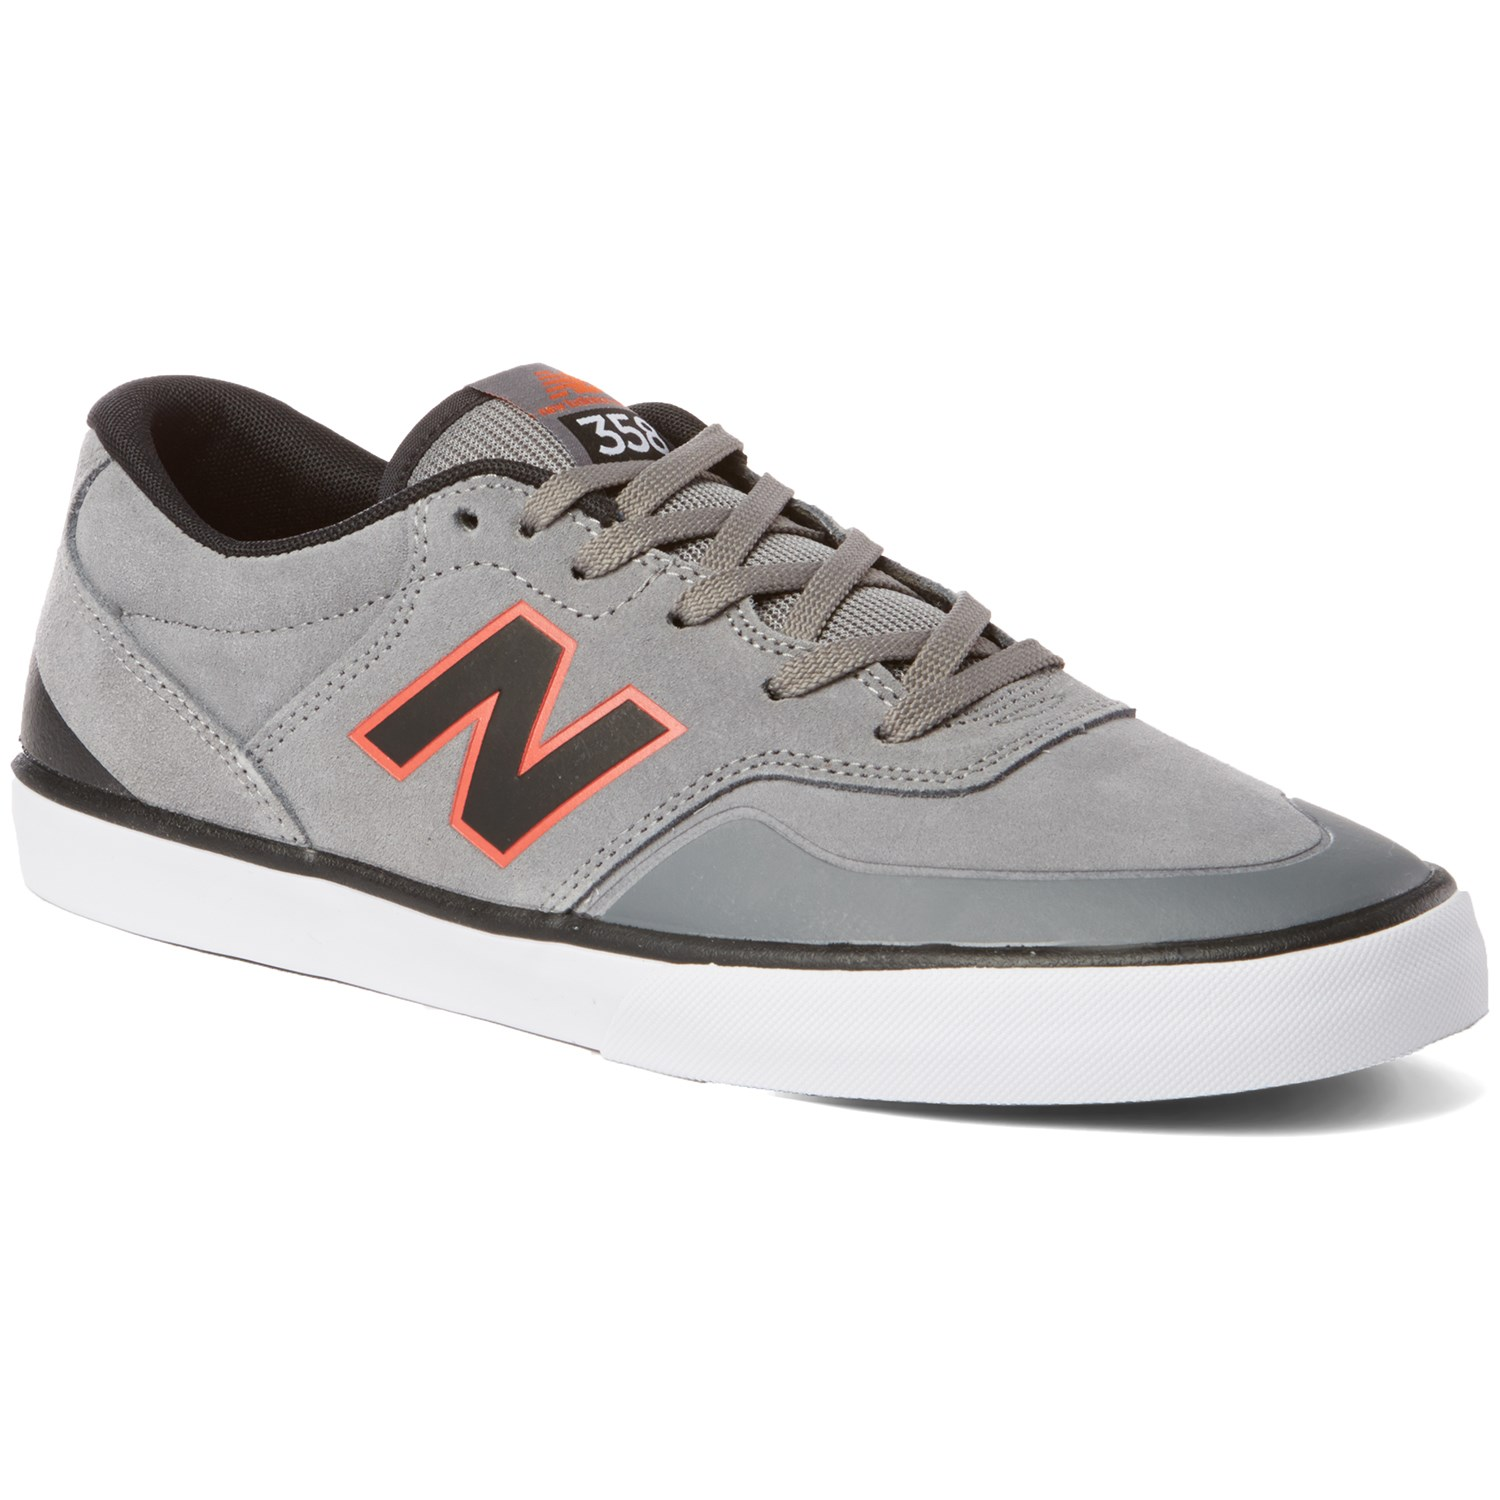 Dec 07,  · You can count on Joe's New Balance Outlet to be your one and only source for clearance merchandise from New Balance. Shop from an extensive inventory of New Balance footwear, apparel and accessories at savings up to 65%.